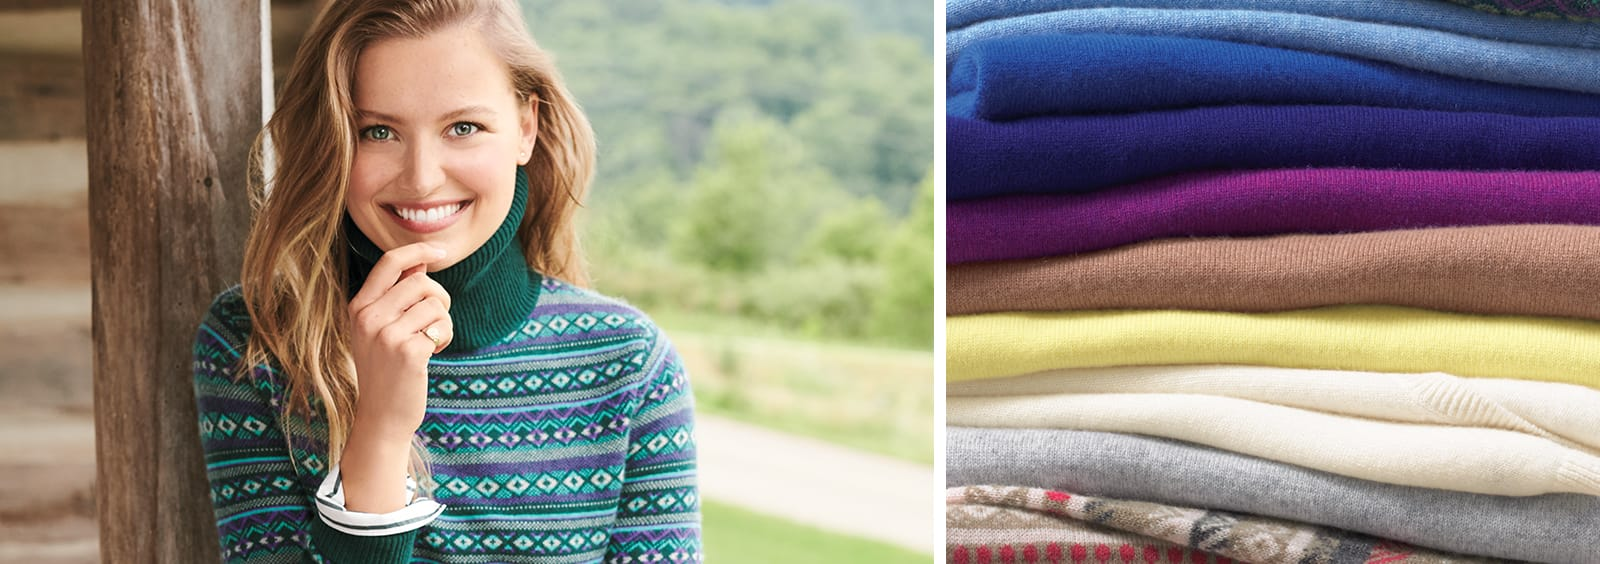 Ways To Wear and Style Cashmere Sweaters